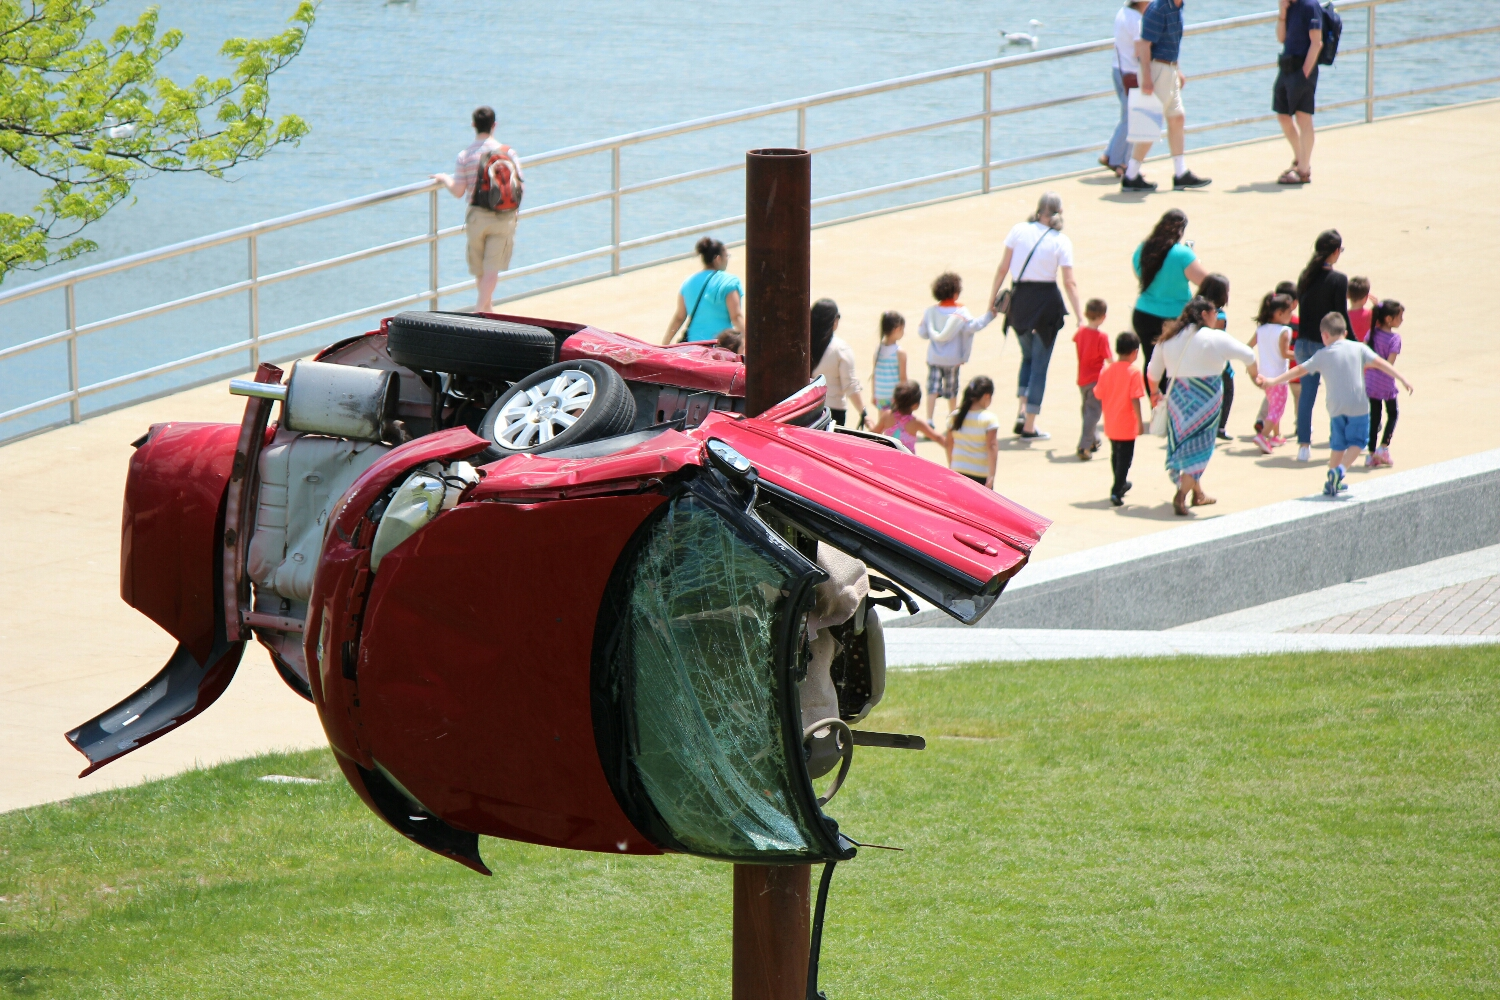 Car crash art outside of museum